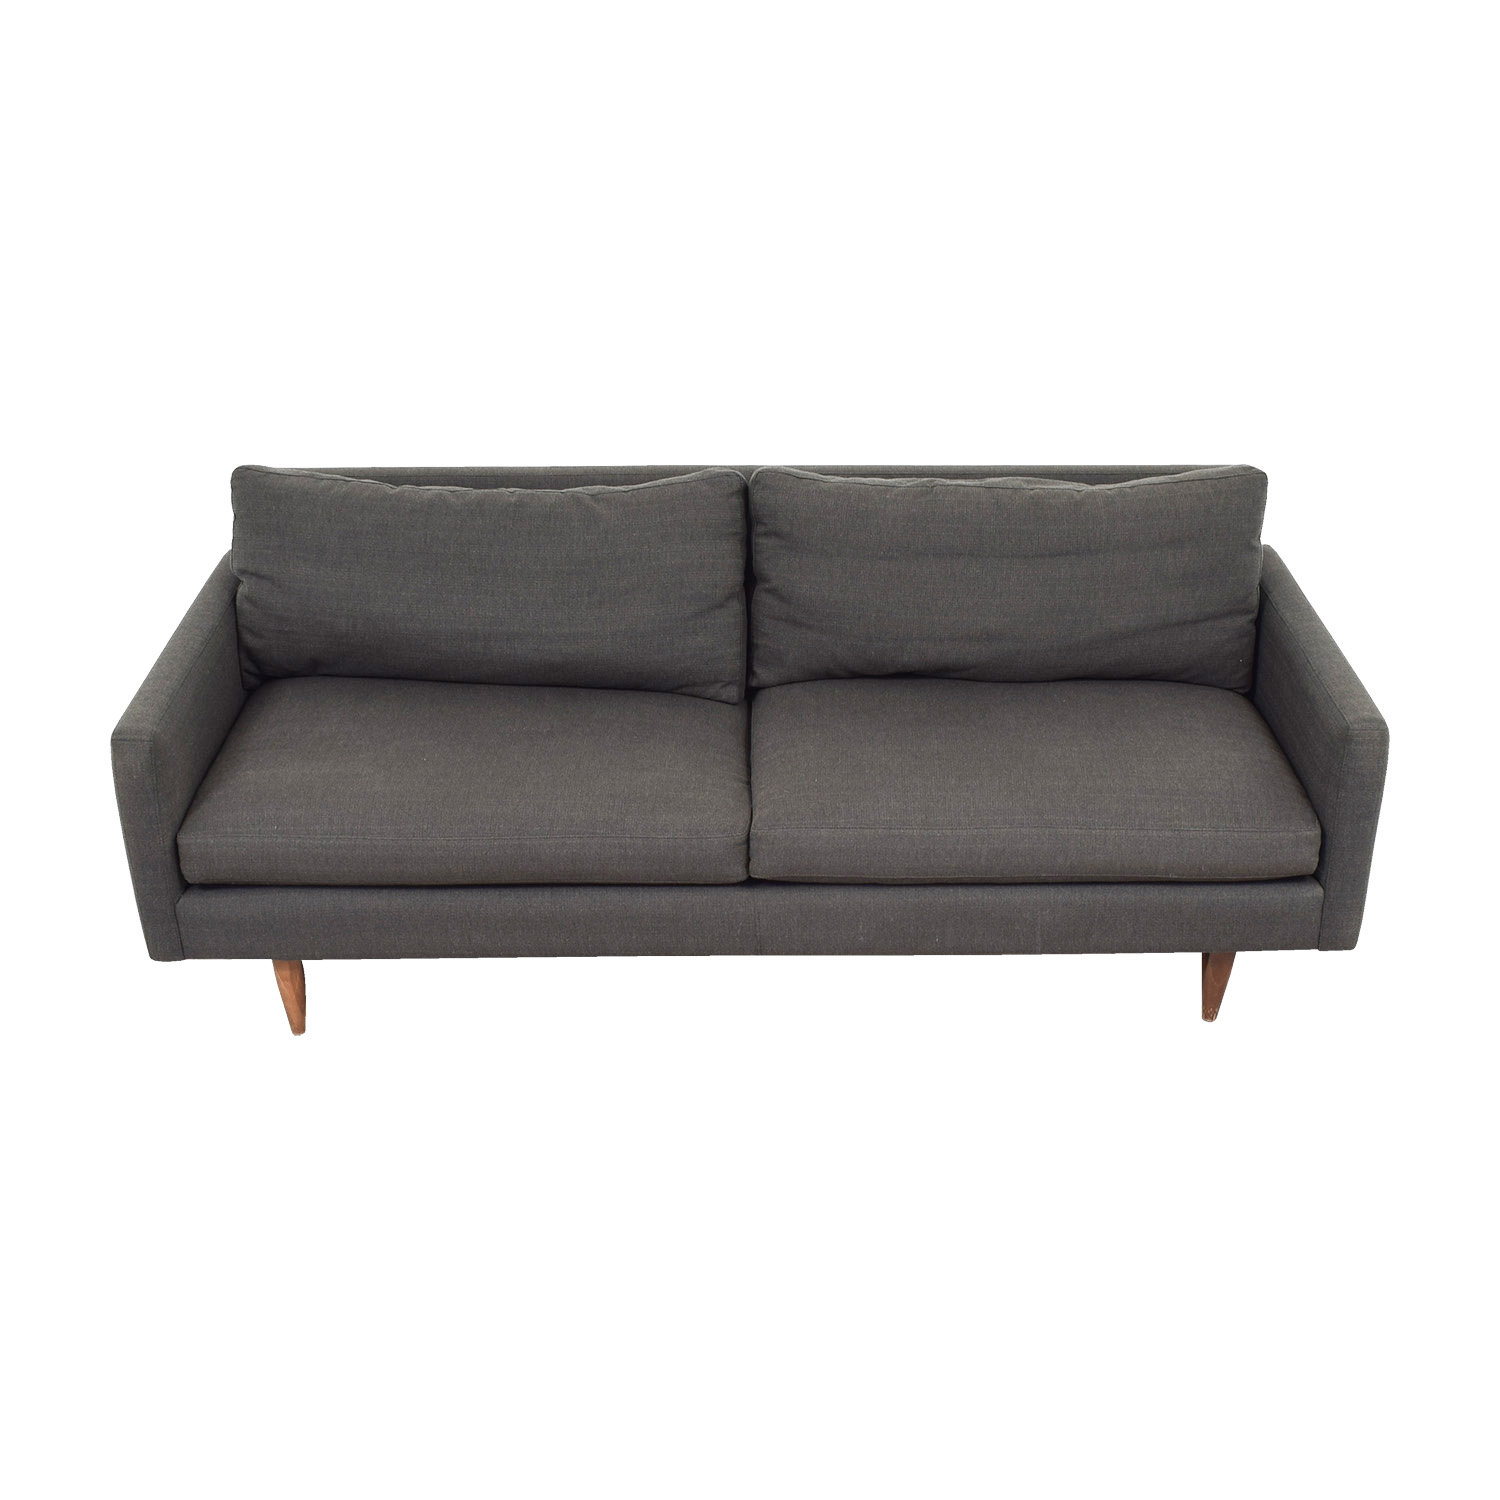 47 Off Macy S Macy S Lizbeth Gray Button Tufted Sofa